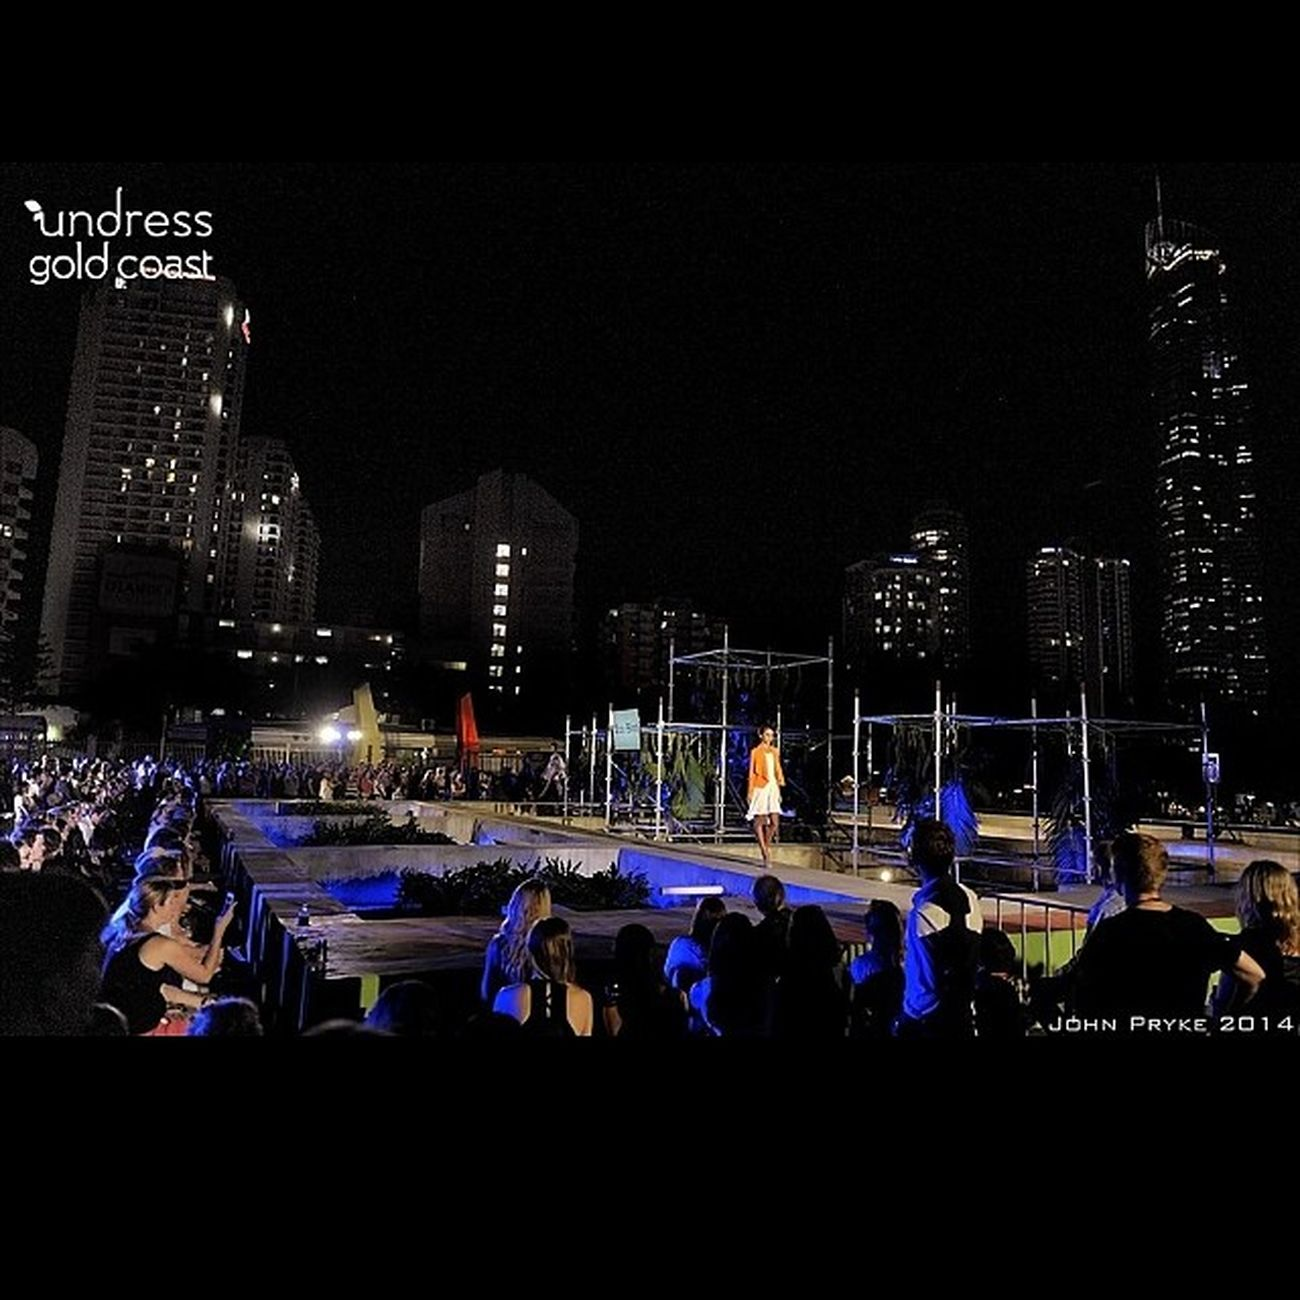 Quick and rough sneak peak edit of Saturday night's rooftop @undressrunways parade in Surfers Paradise Undressgc Undressrunways @undressrunways Model Fashion Photography Jkdimagery Sustainablefashion Parade Whomadeyourclothes Ethicalclothing Designer  Design Colour Color Fabric Clothes Clothing Catwalk Fashionphotography GoldCoast Undressgoldcoast @danifitch8 @katzmodels